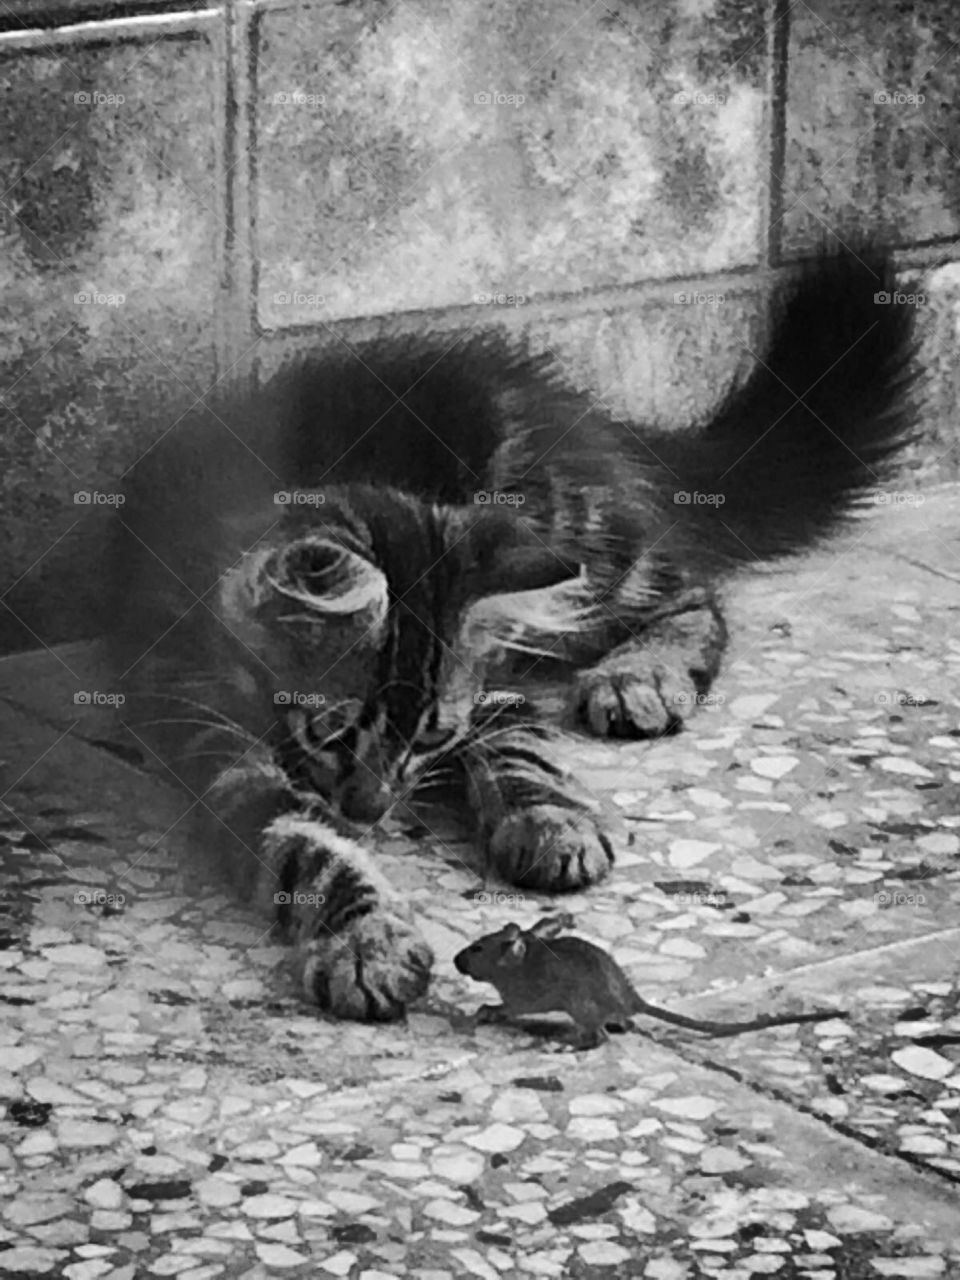 Rat playing with cat or maybe rat self confidence or maybe i don't know it's just the perfect timing of taking the picture